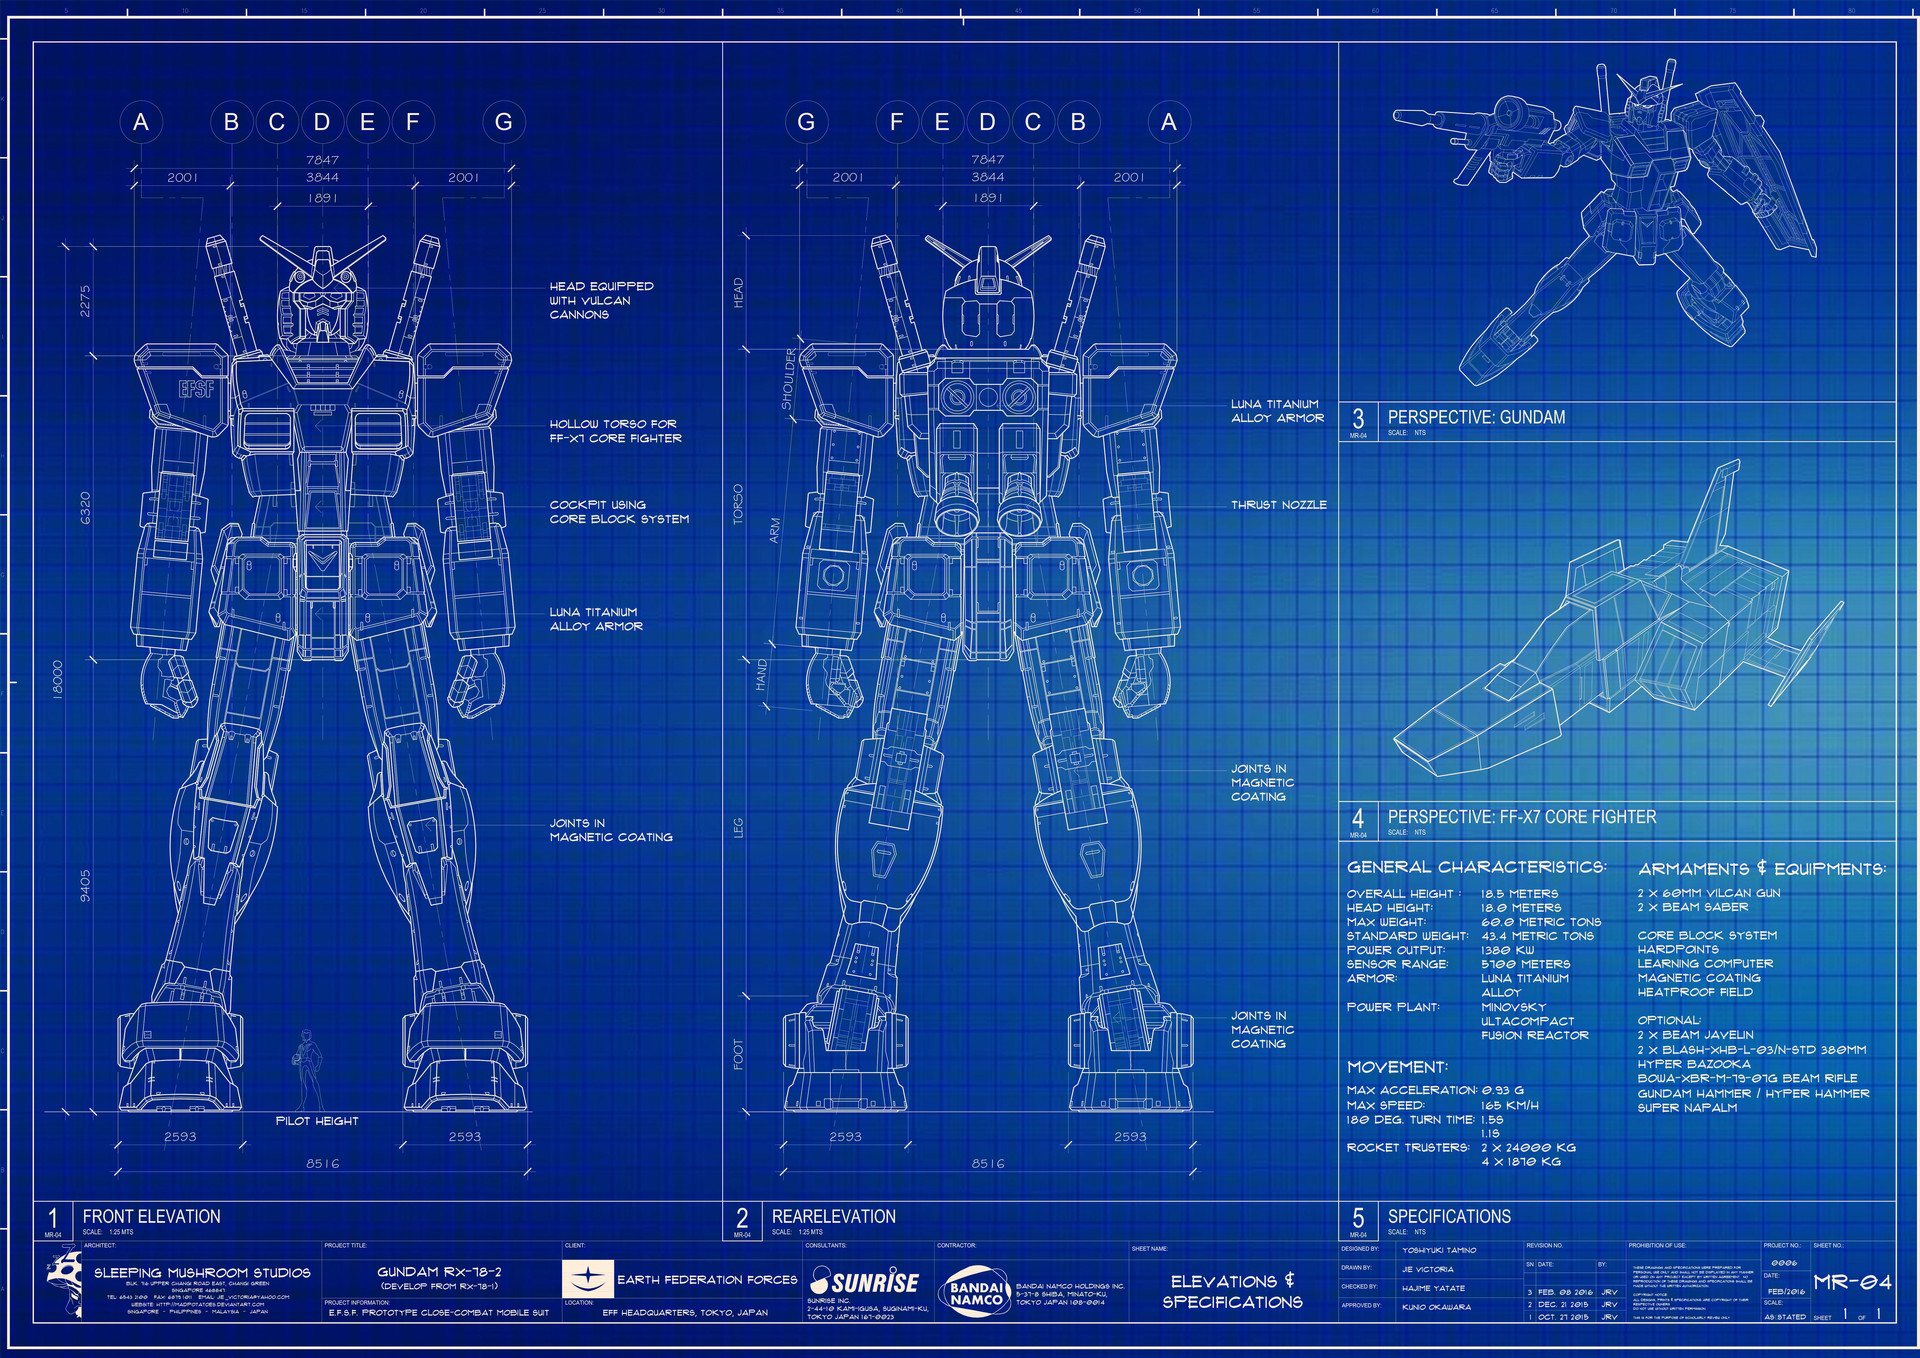 Artstation gundam rx 78 2 blueprint jie victoria malvernweather Images